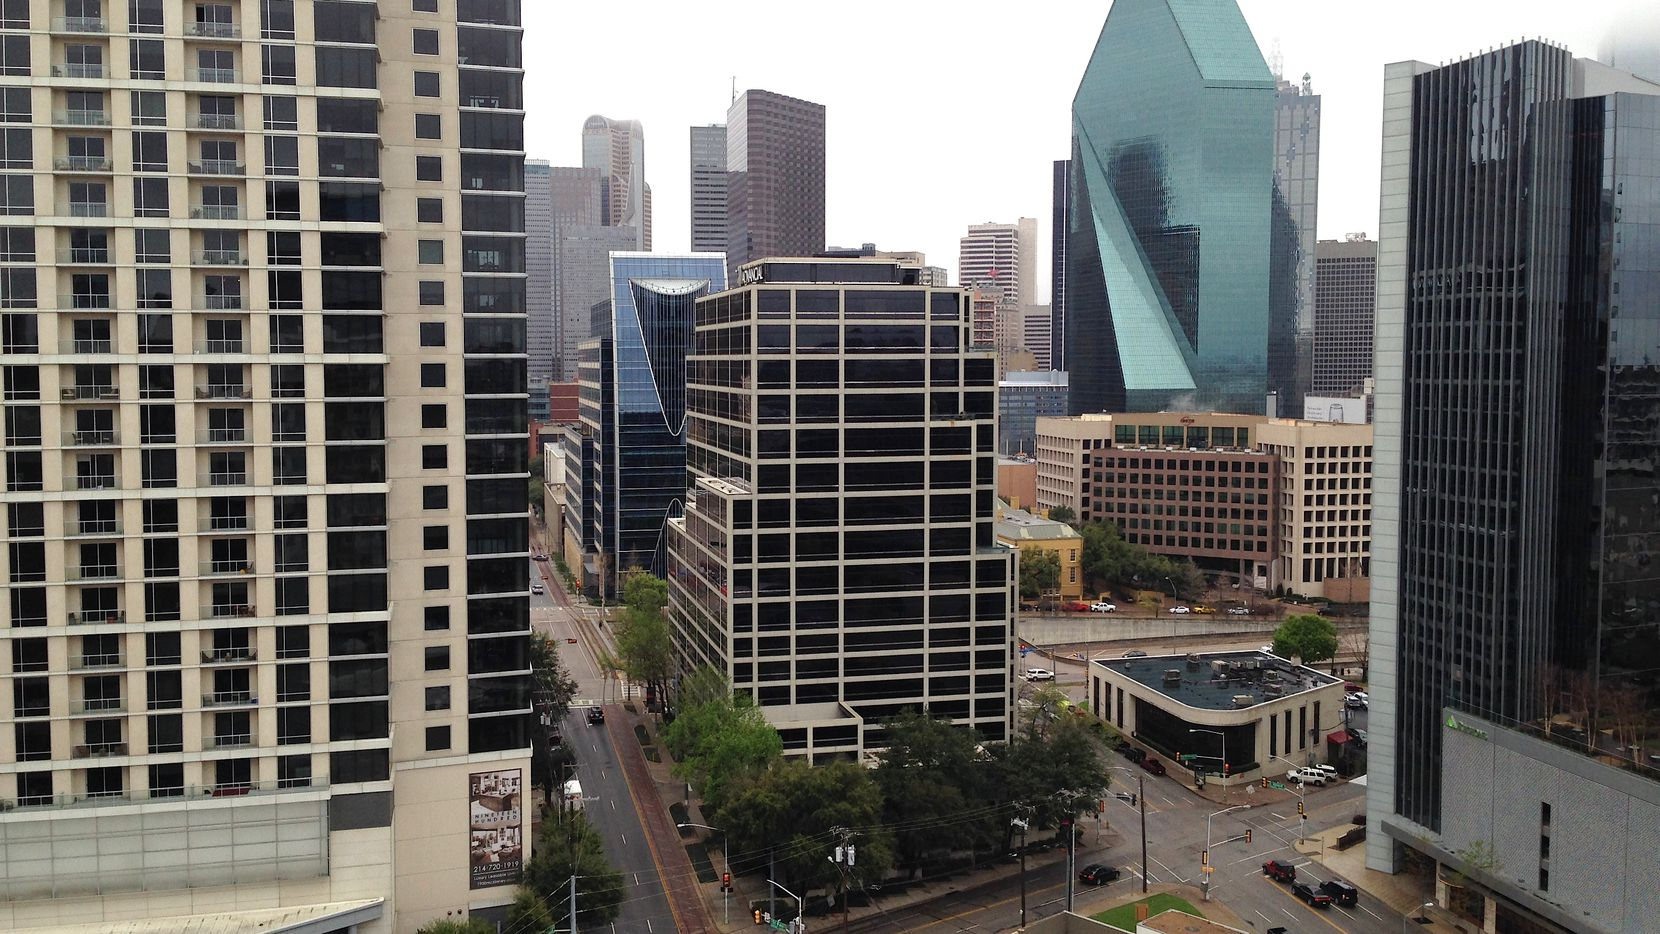 More than 1.6 million square feet of offices in Dallas' Uptown district now house legal firms.